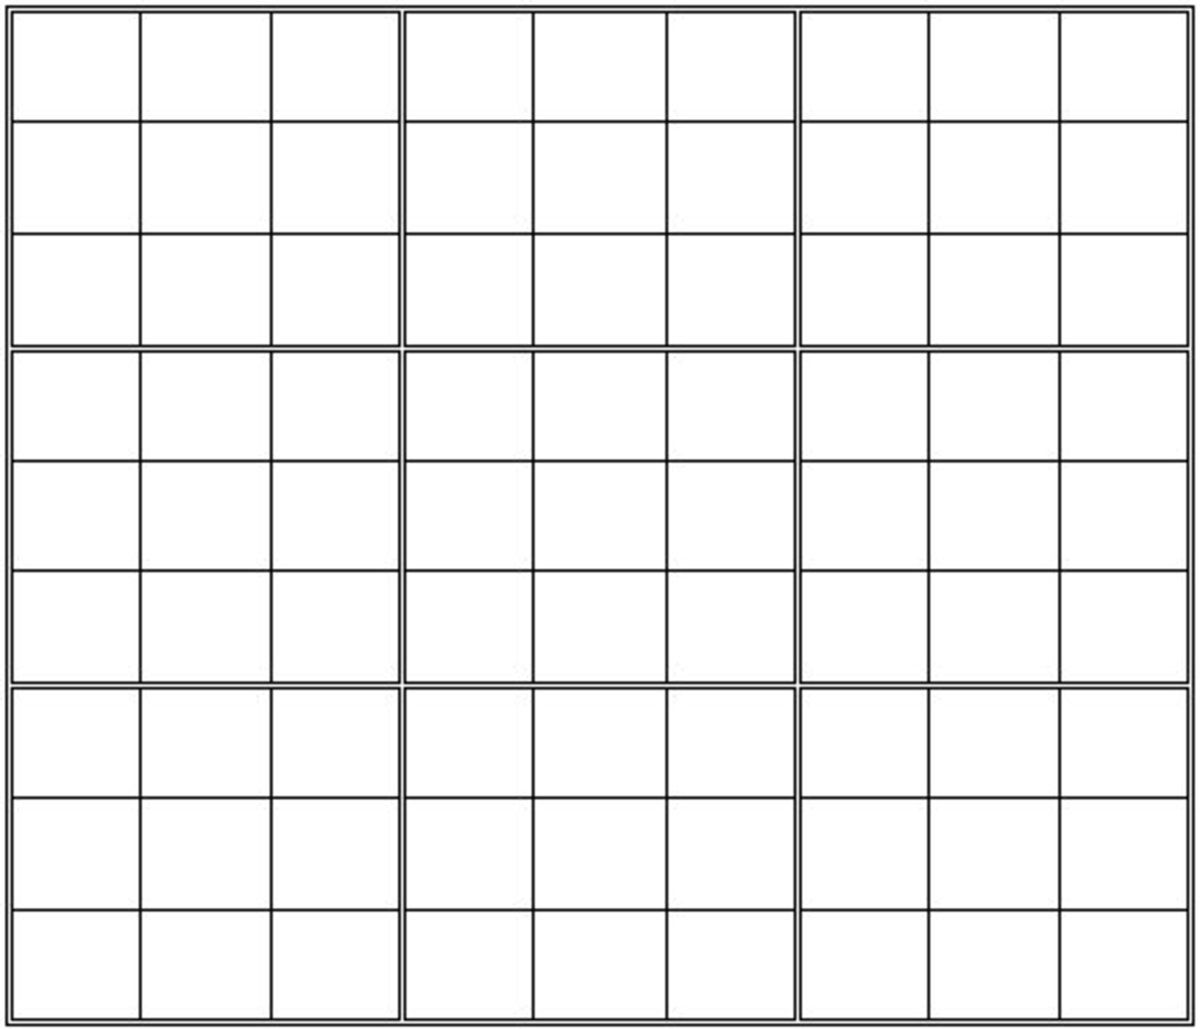 Here is a blank Sudoku grid you can print out. It is the work of this ...